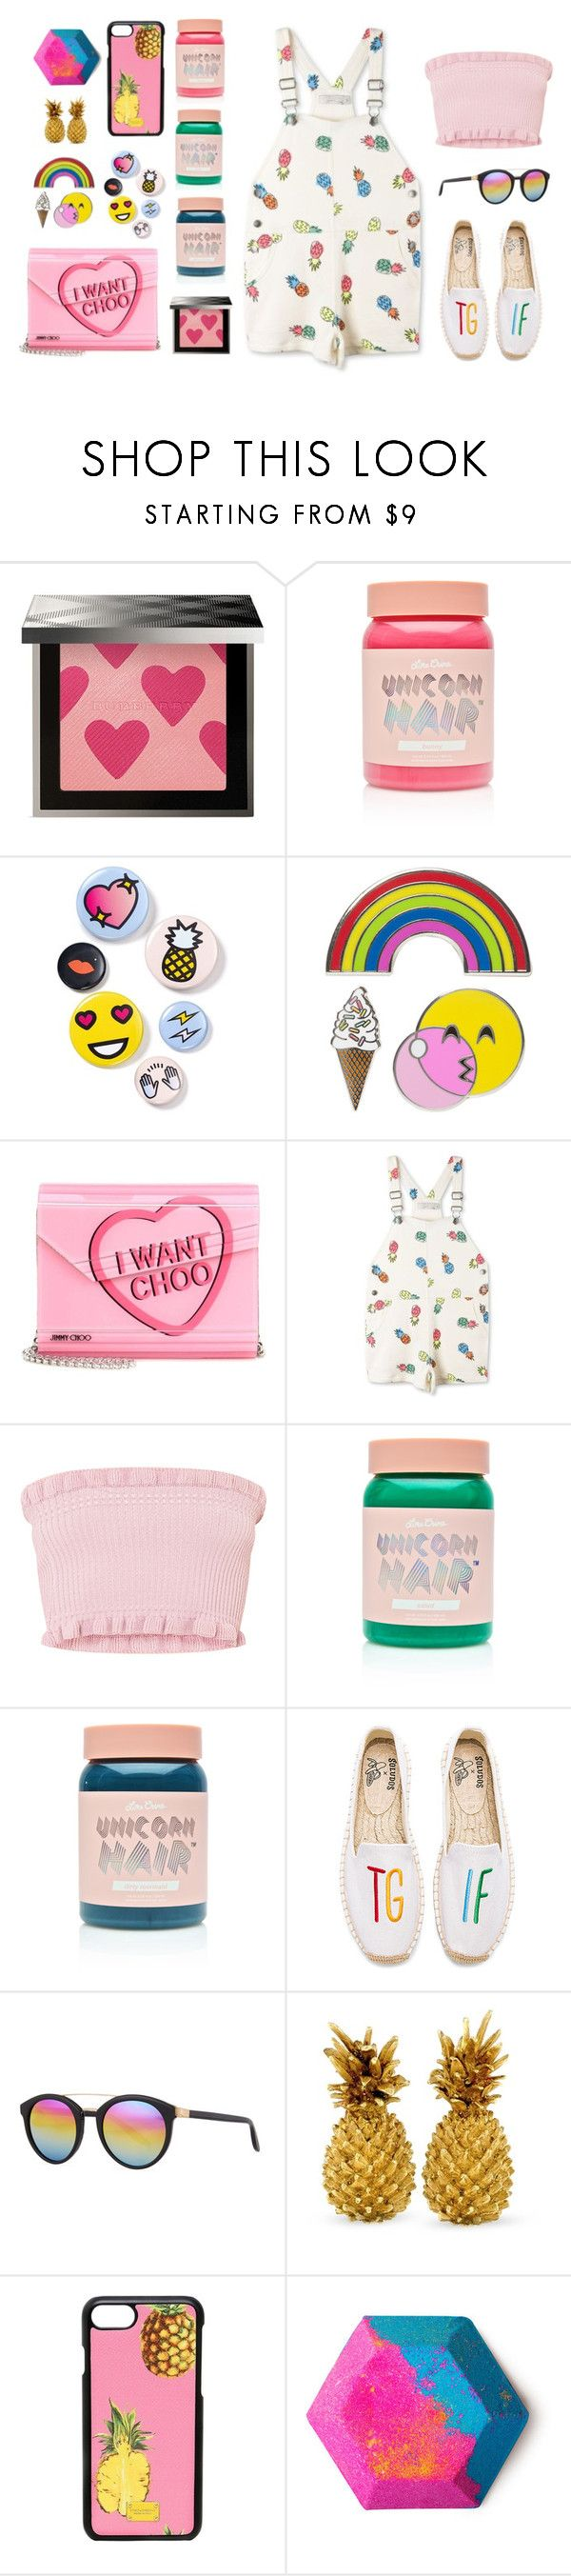 """pink mood"" by lanagur on Polyvore featuring мода, Burberry, Lime Crime, Bing Bang, iDecoz, Jimmy Choo, STELLA McCARTNEY, Soludos, Barton Perreira и Dolce&Gabbana"